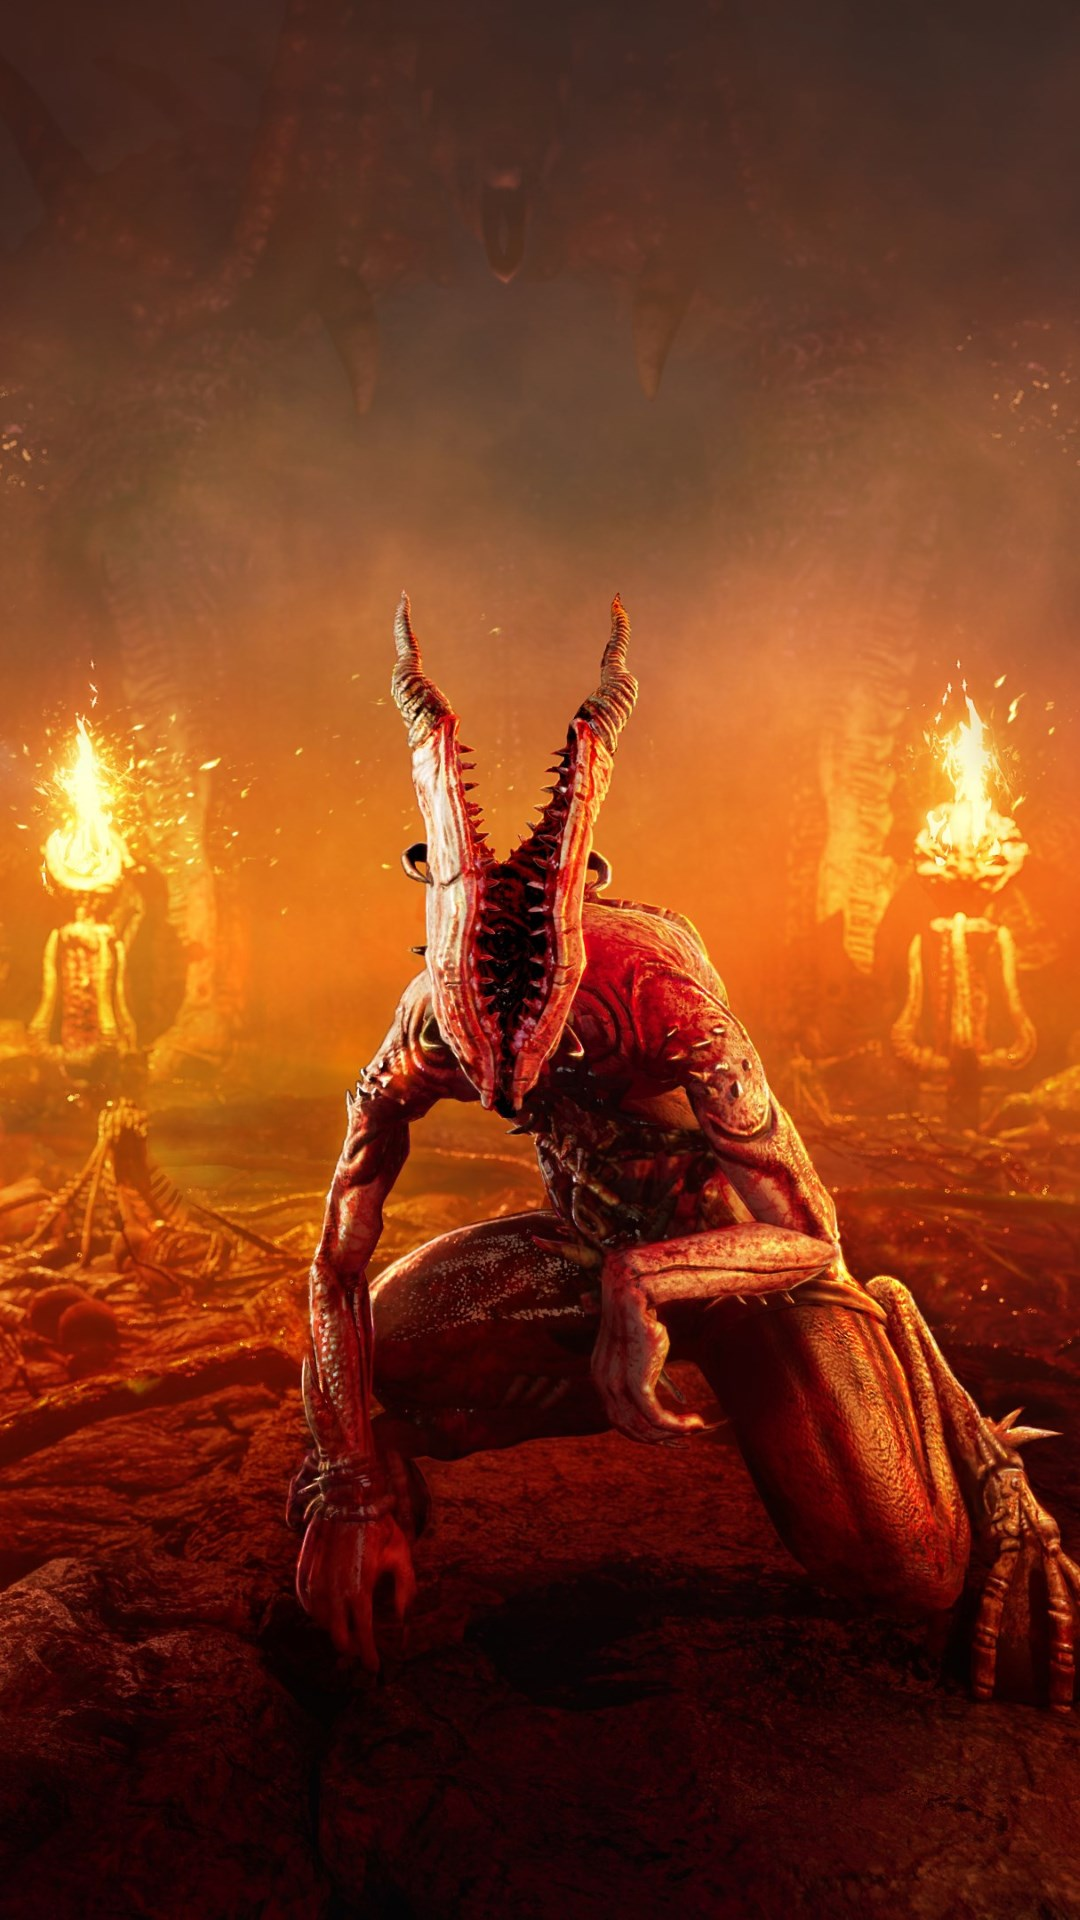 download wallpaper  agony  the video game 1080x1920